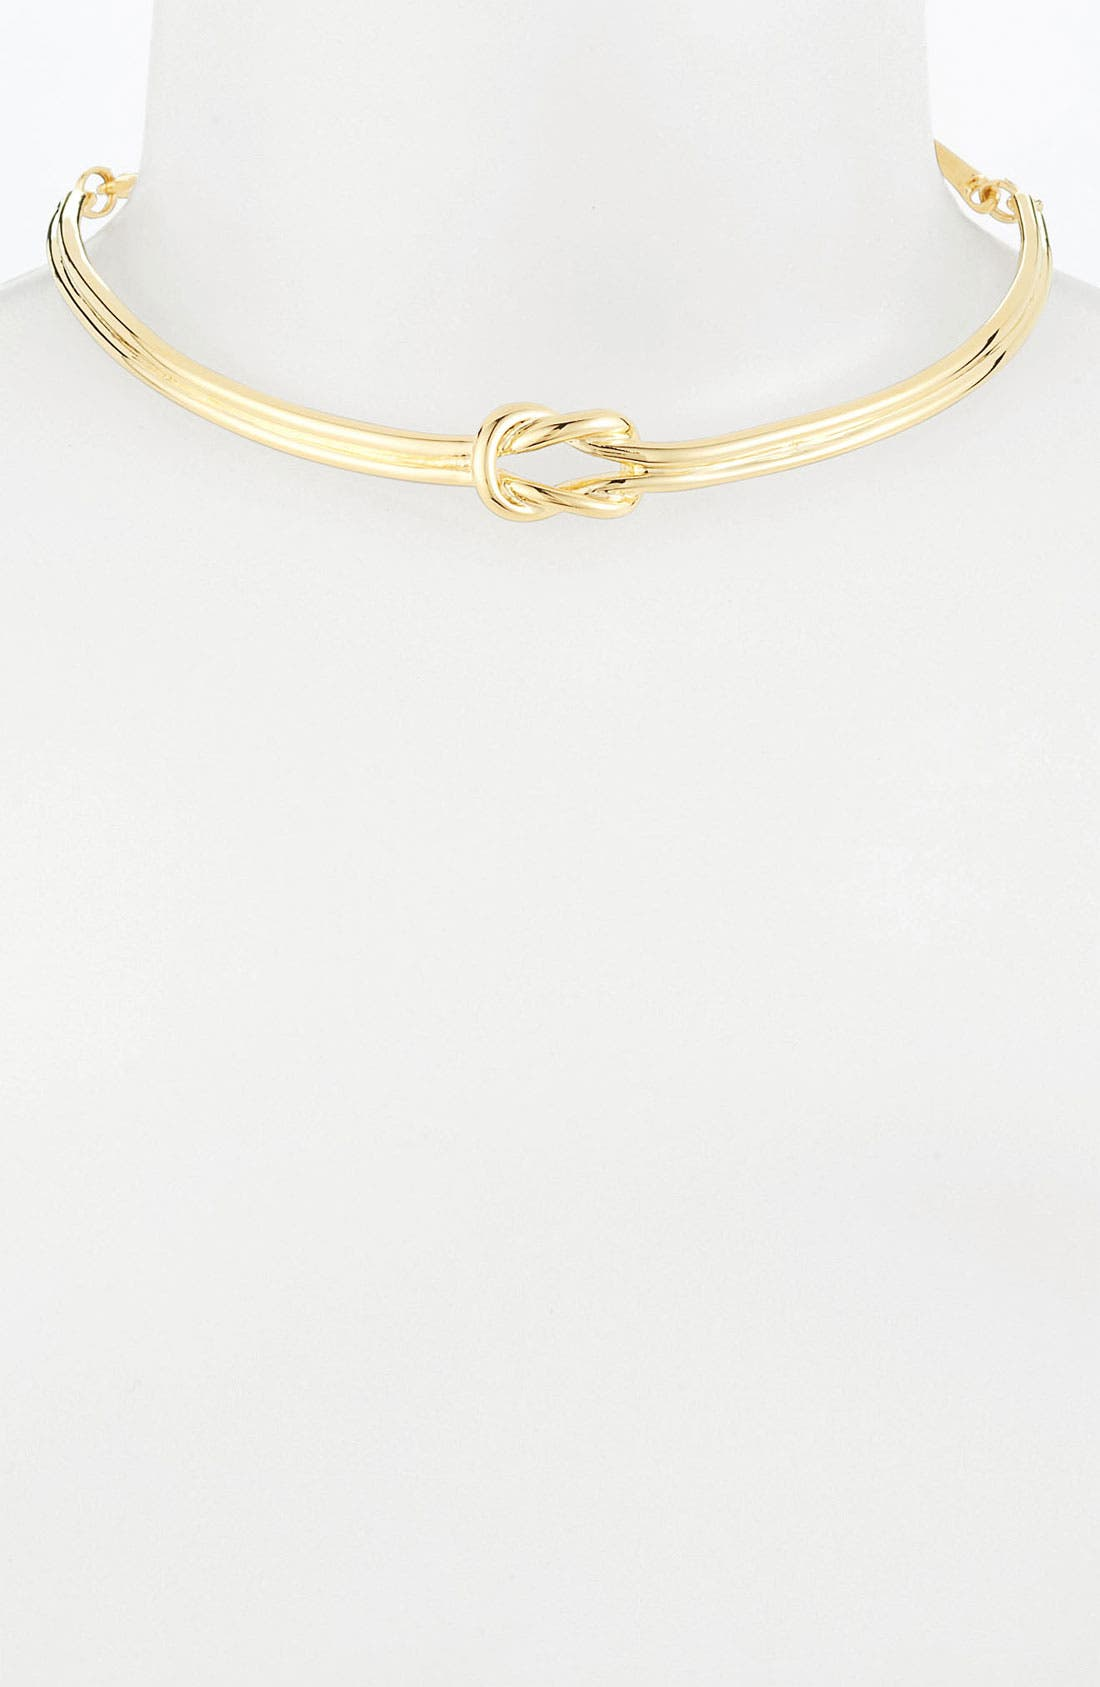 Main Image - Tory Burch 'Hercules' Collar Necklace